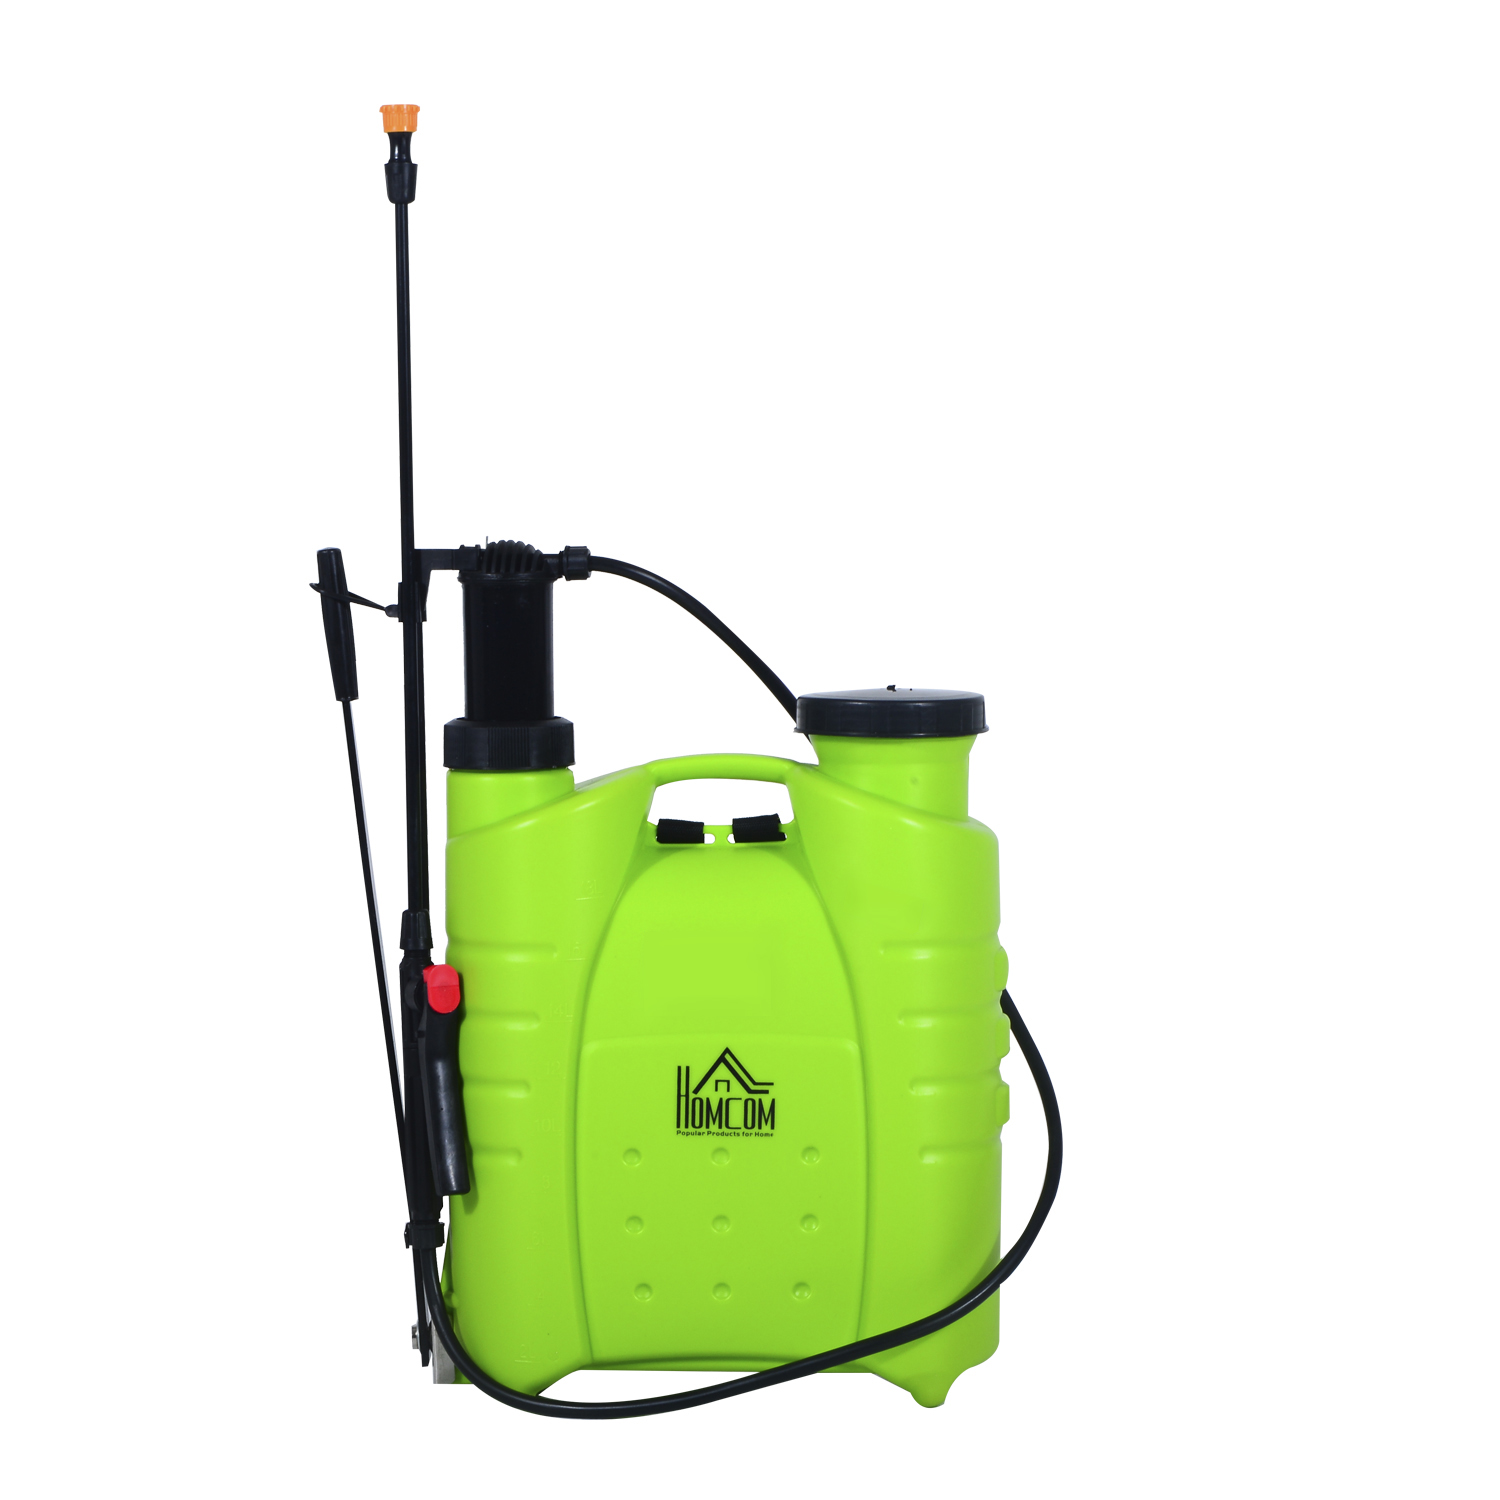 HomCom 4 Gallon Hand Pump Backpack Sprayer by Aosom LLC